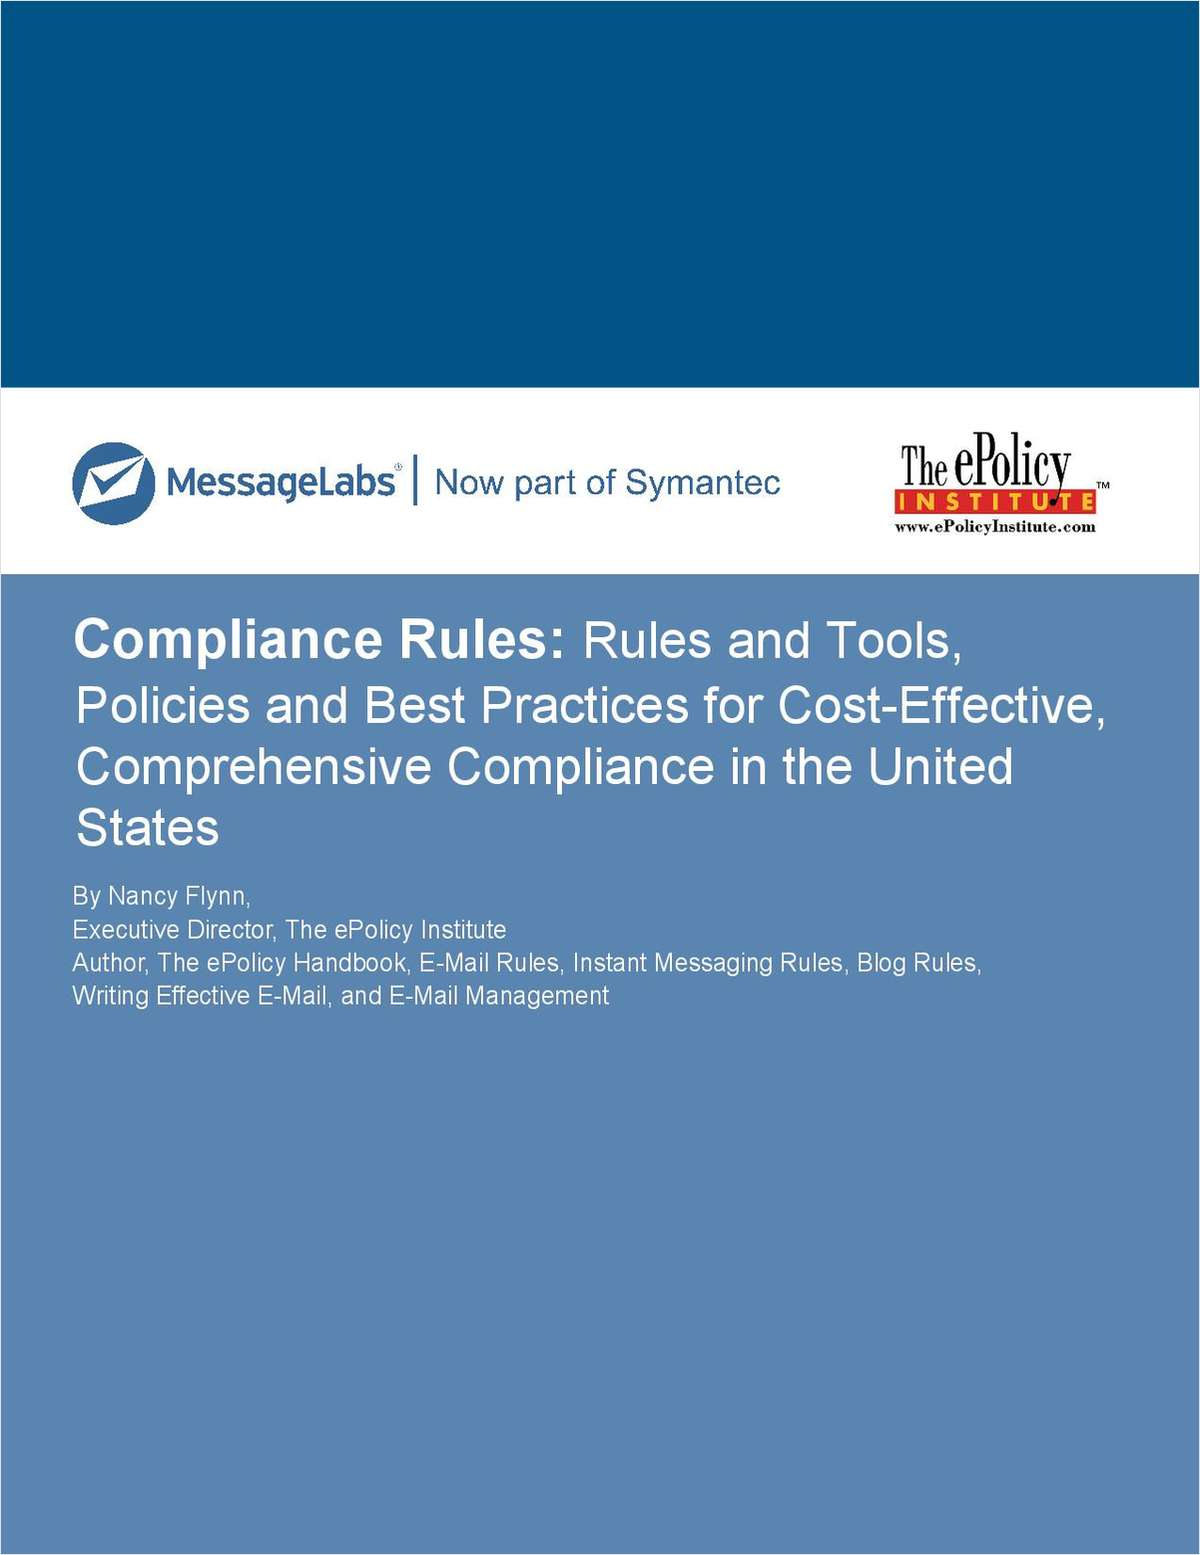 Compliance Rules: Best Practices for Cost-Effective, Comprehensive Compliance